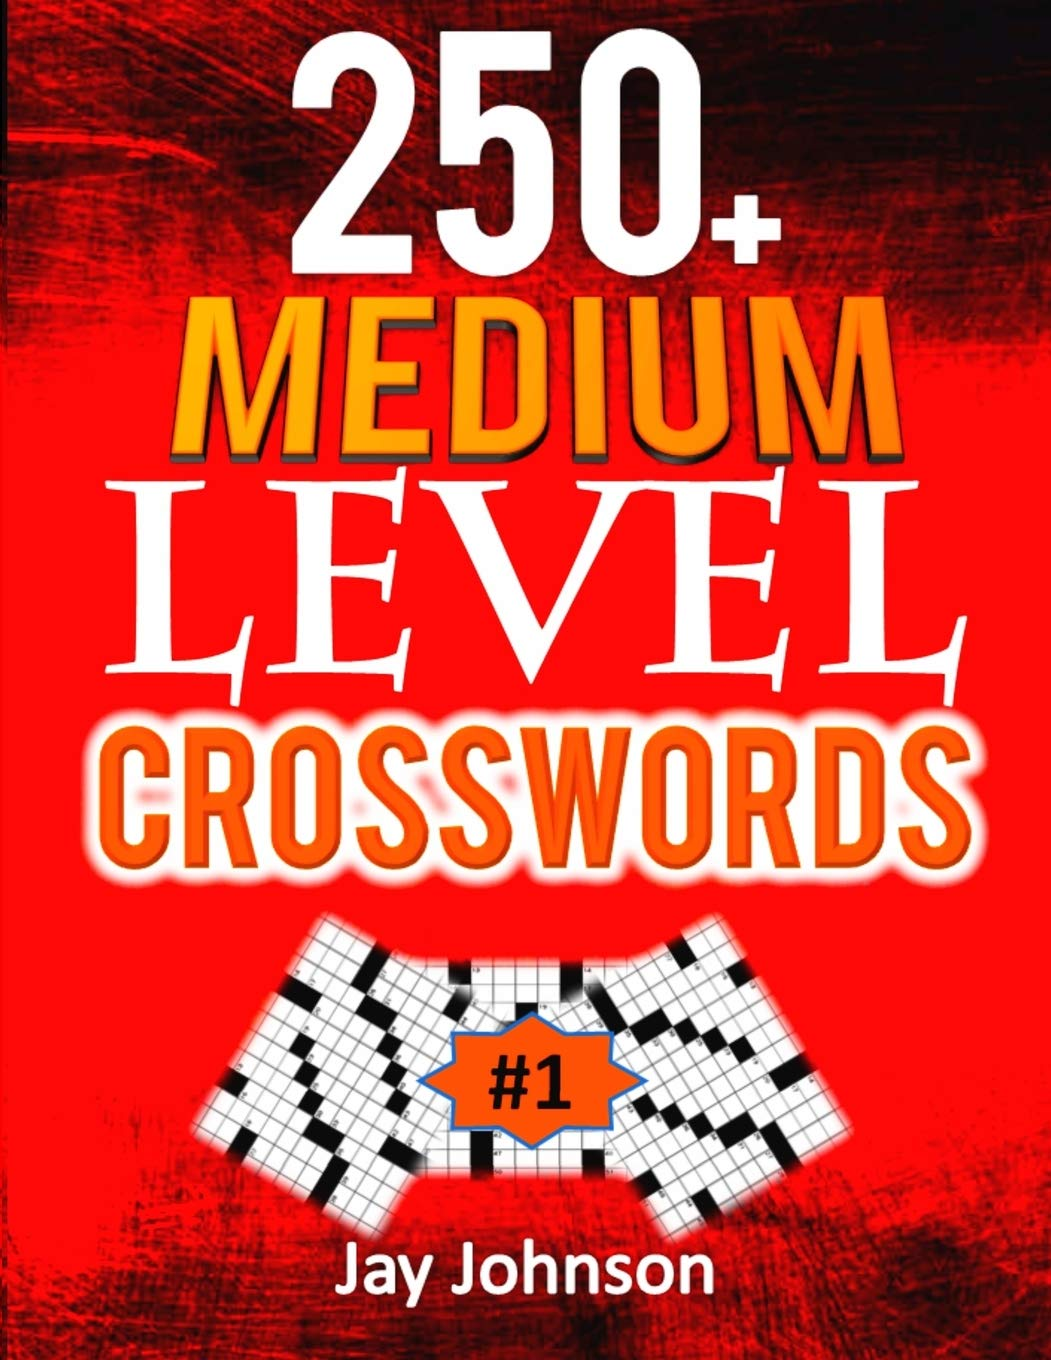 250 Medium Level Crosswords A Special Crossword Puzzle Book For Adults Medium Difficulty Based On Contemporary Words As Medium Difficult Crossword Vol 1 Adults Medium Difficulty Puzzles Johnson Jay 9781698866543 Amazon Com Books